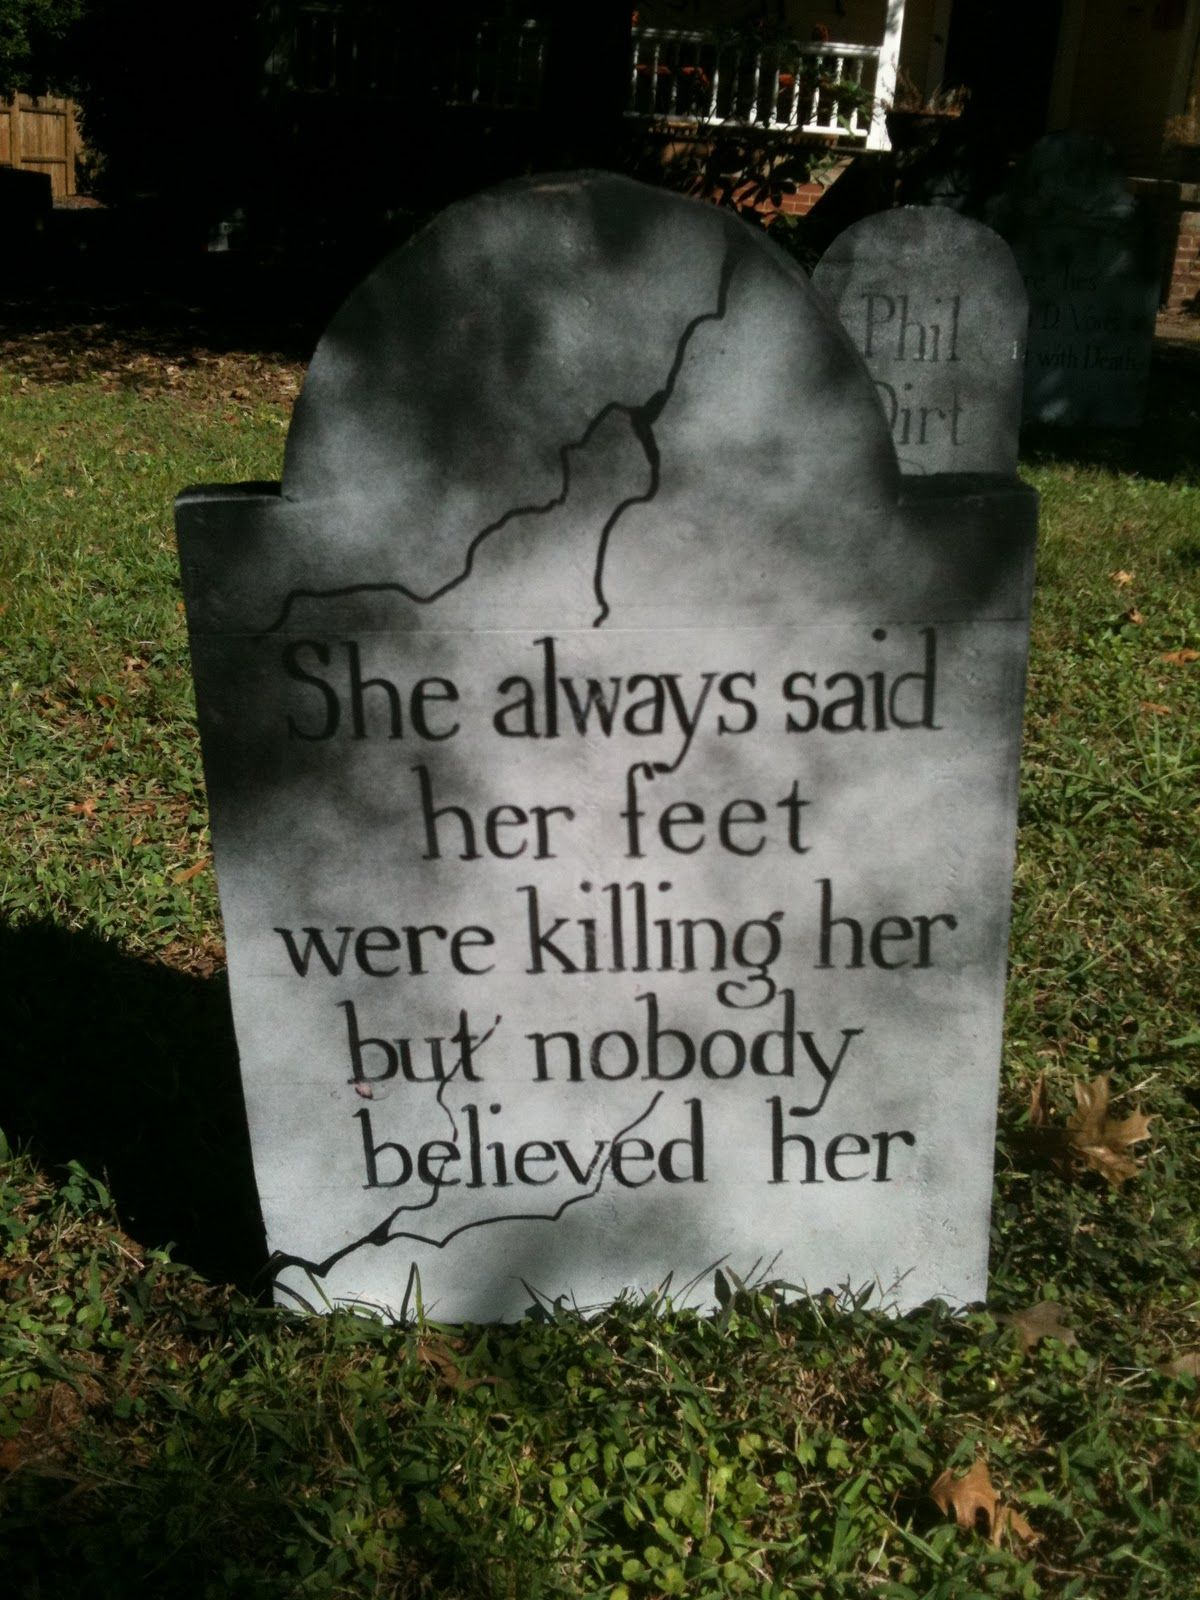 she always said her feet were killing her but nobody believed her